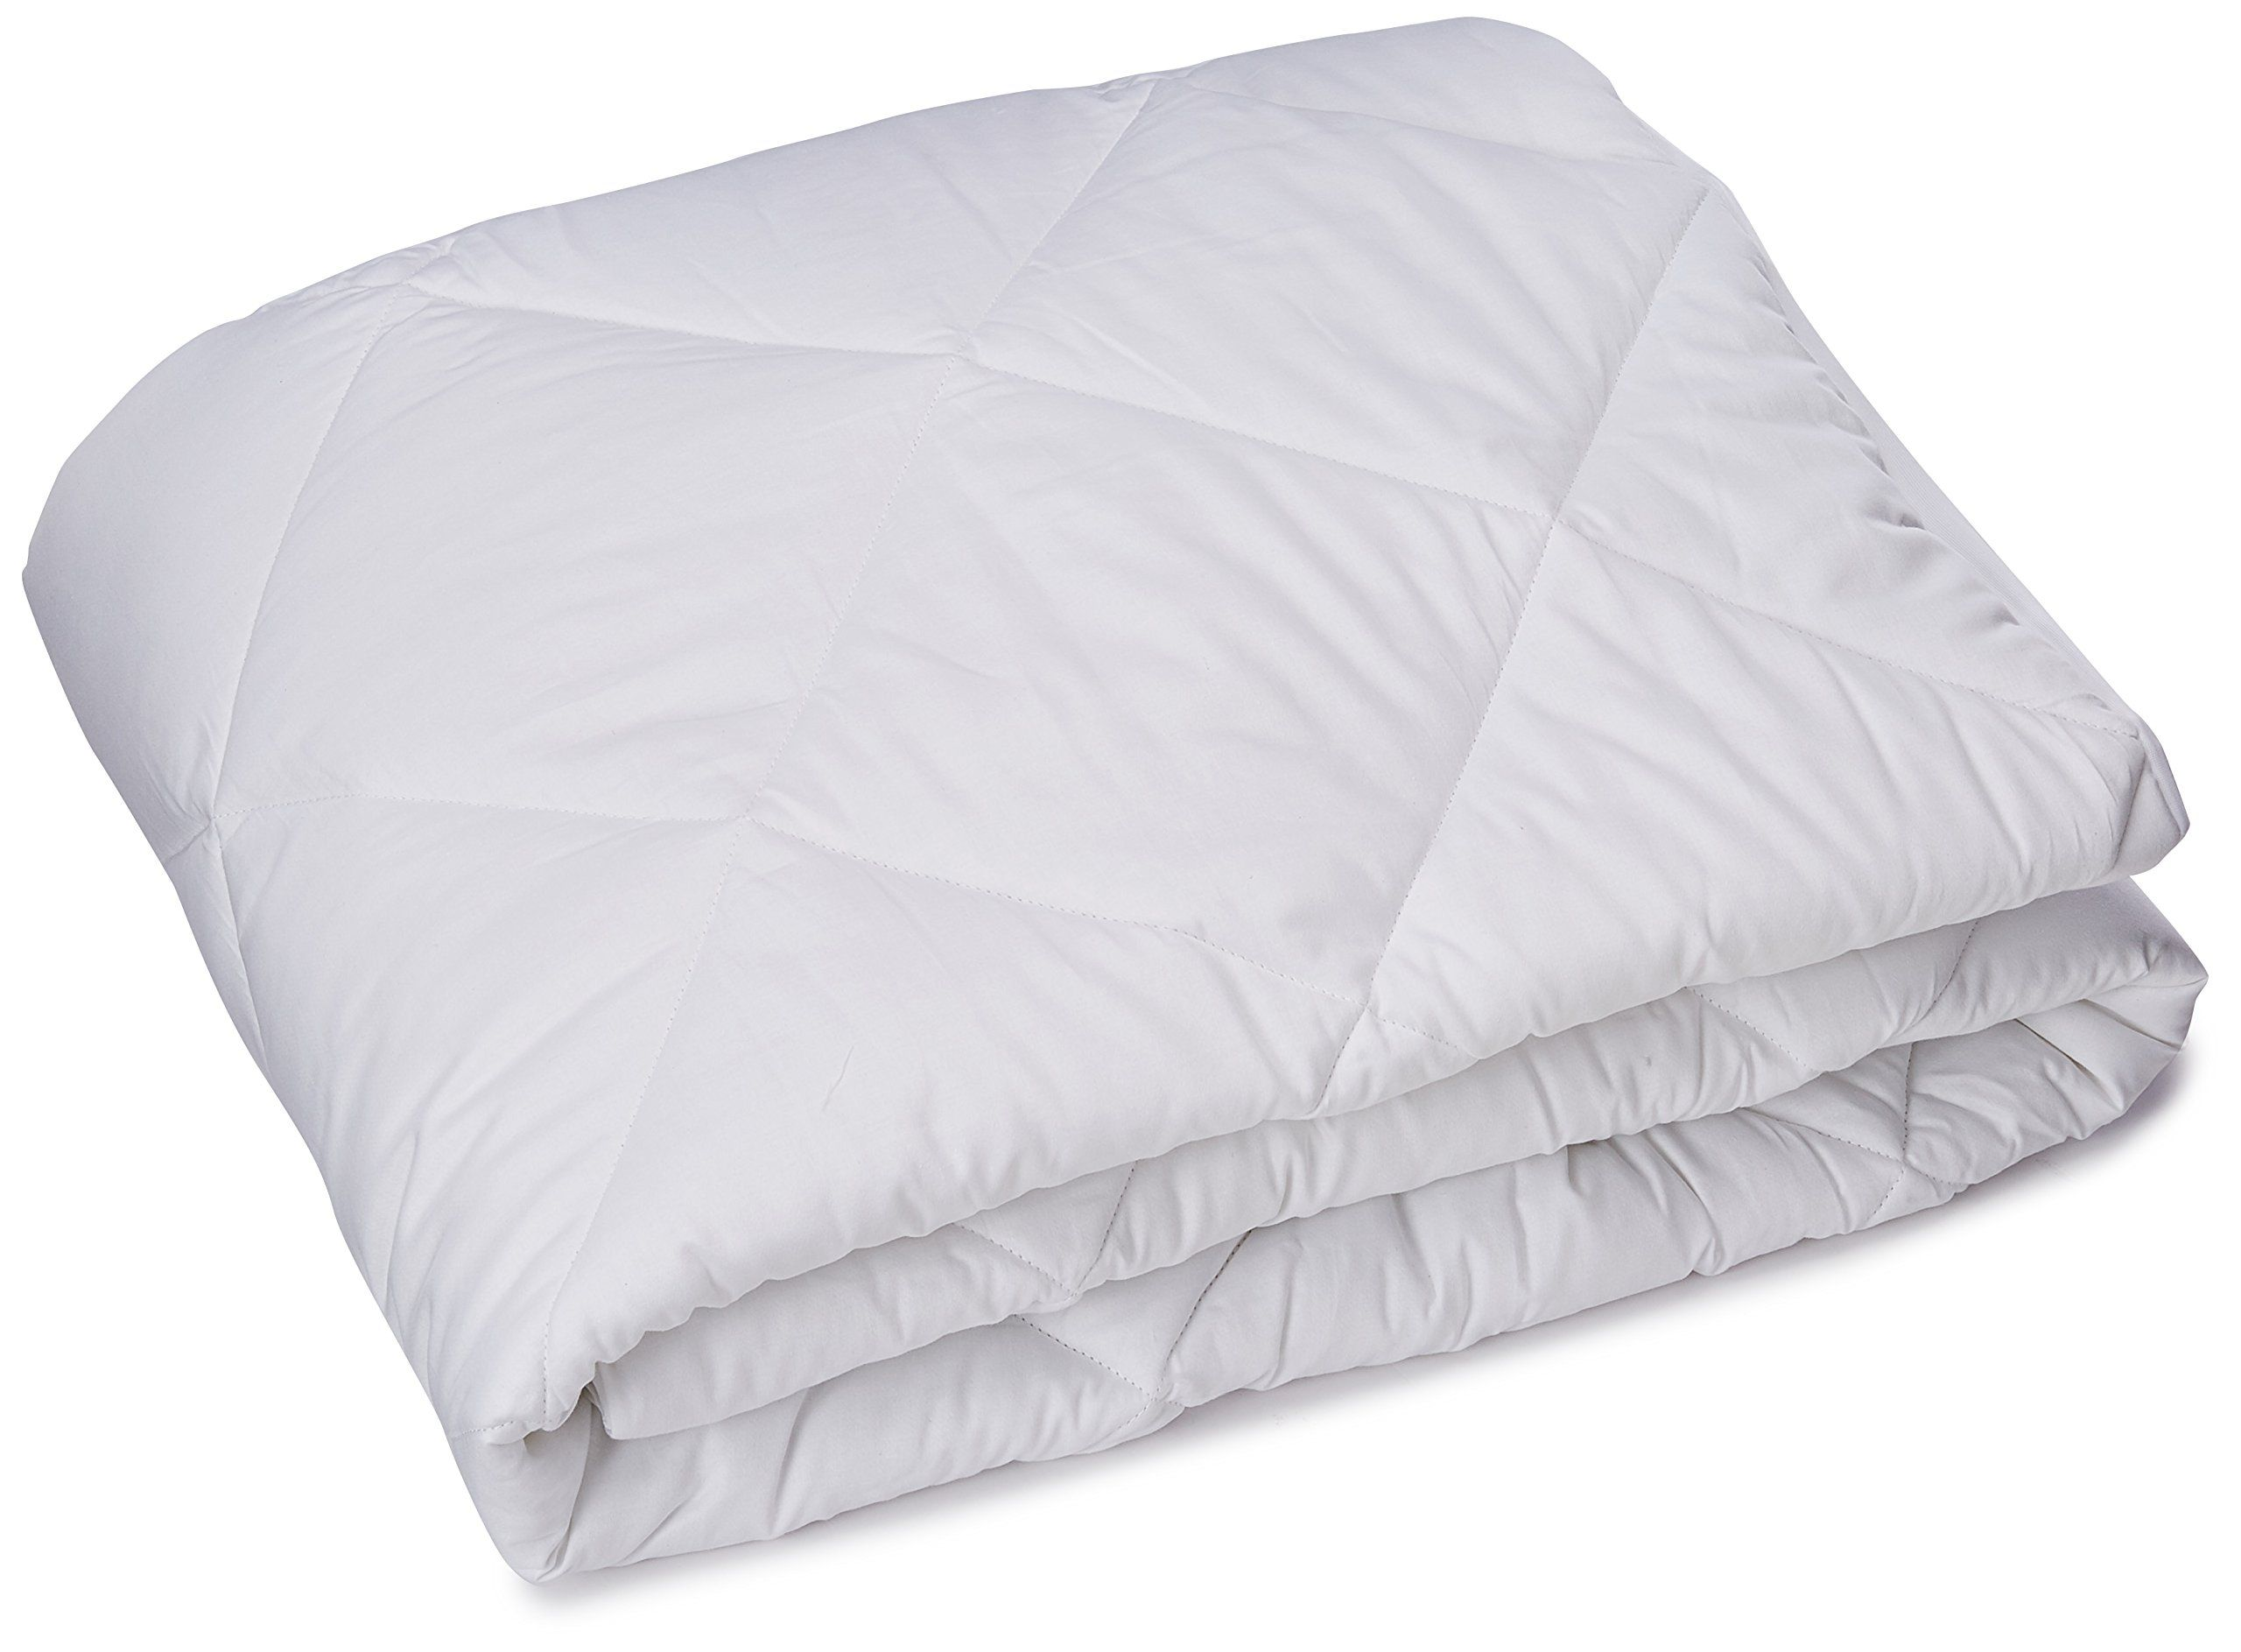 Madison Park Quiet Nights Waterproof Mattress Cover Cotton Bed Protector King White To View Further For This Item Visit Bed Bed Protector Mattress Covers